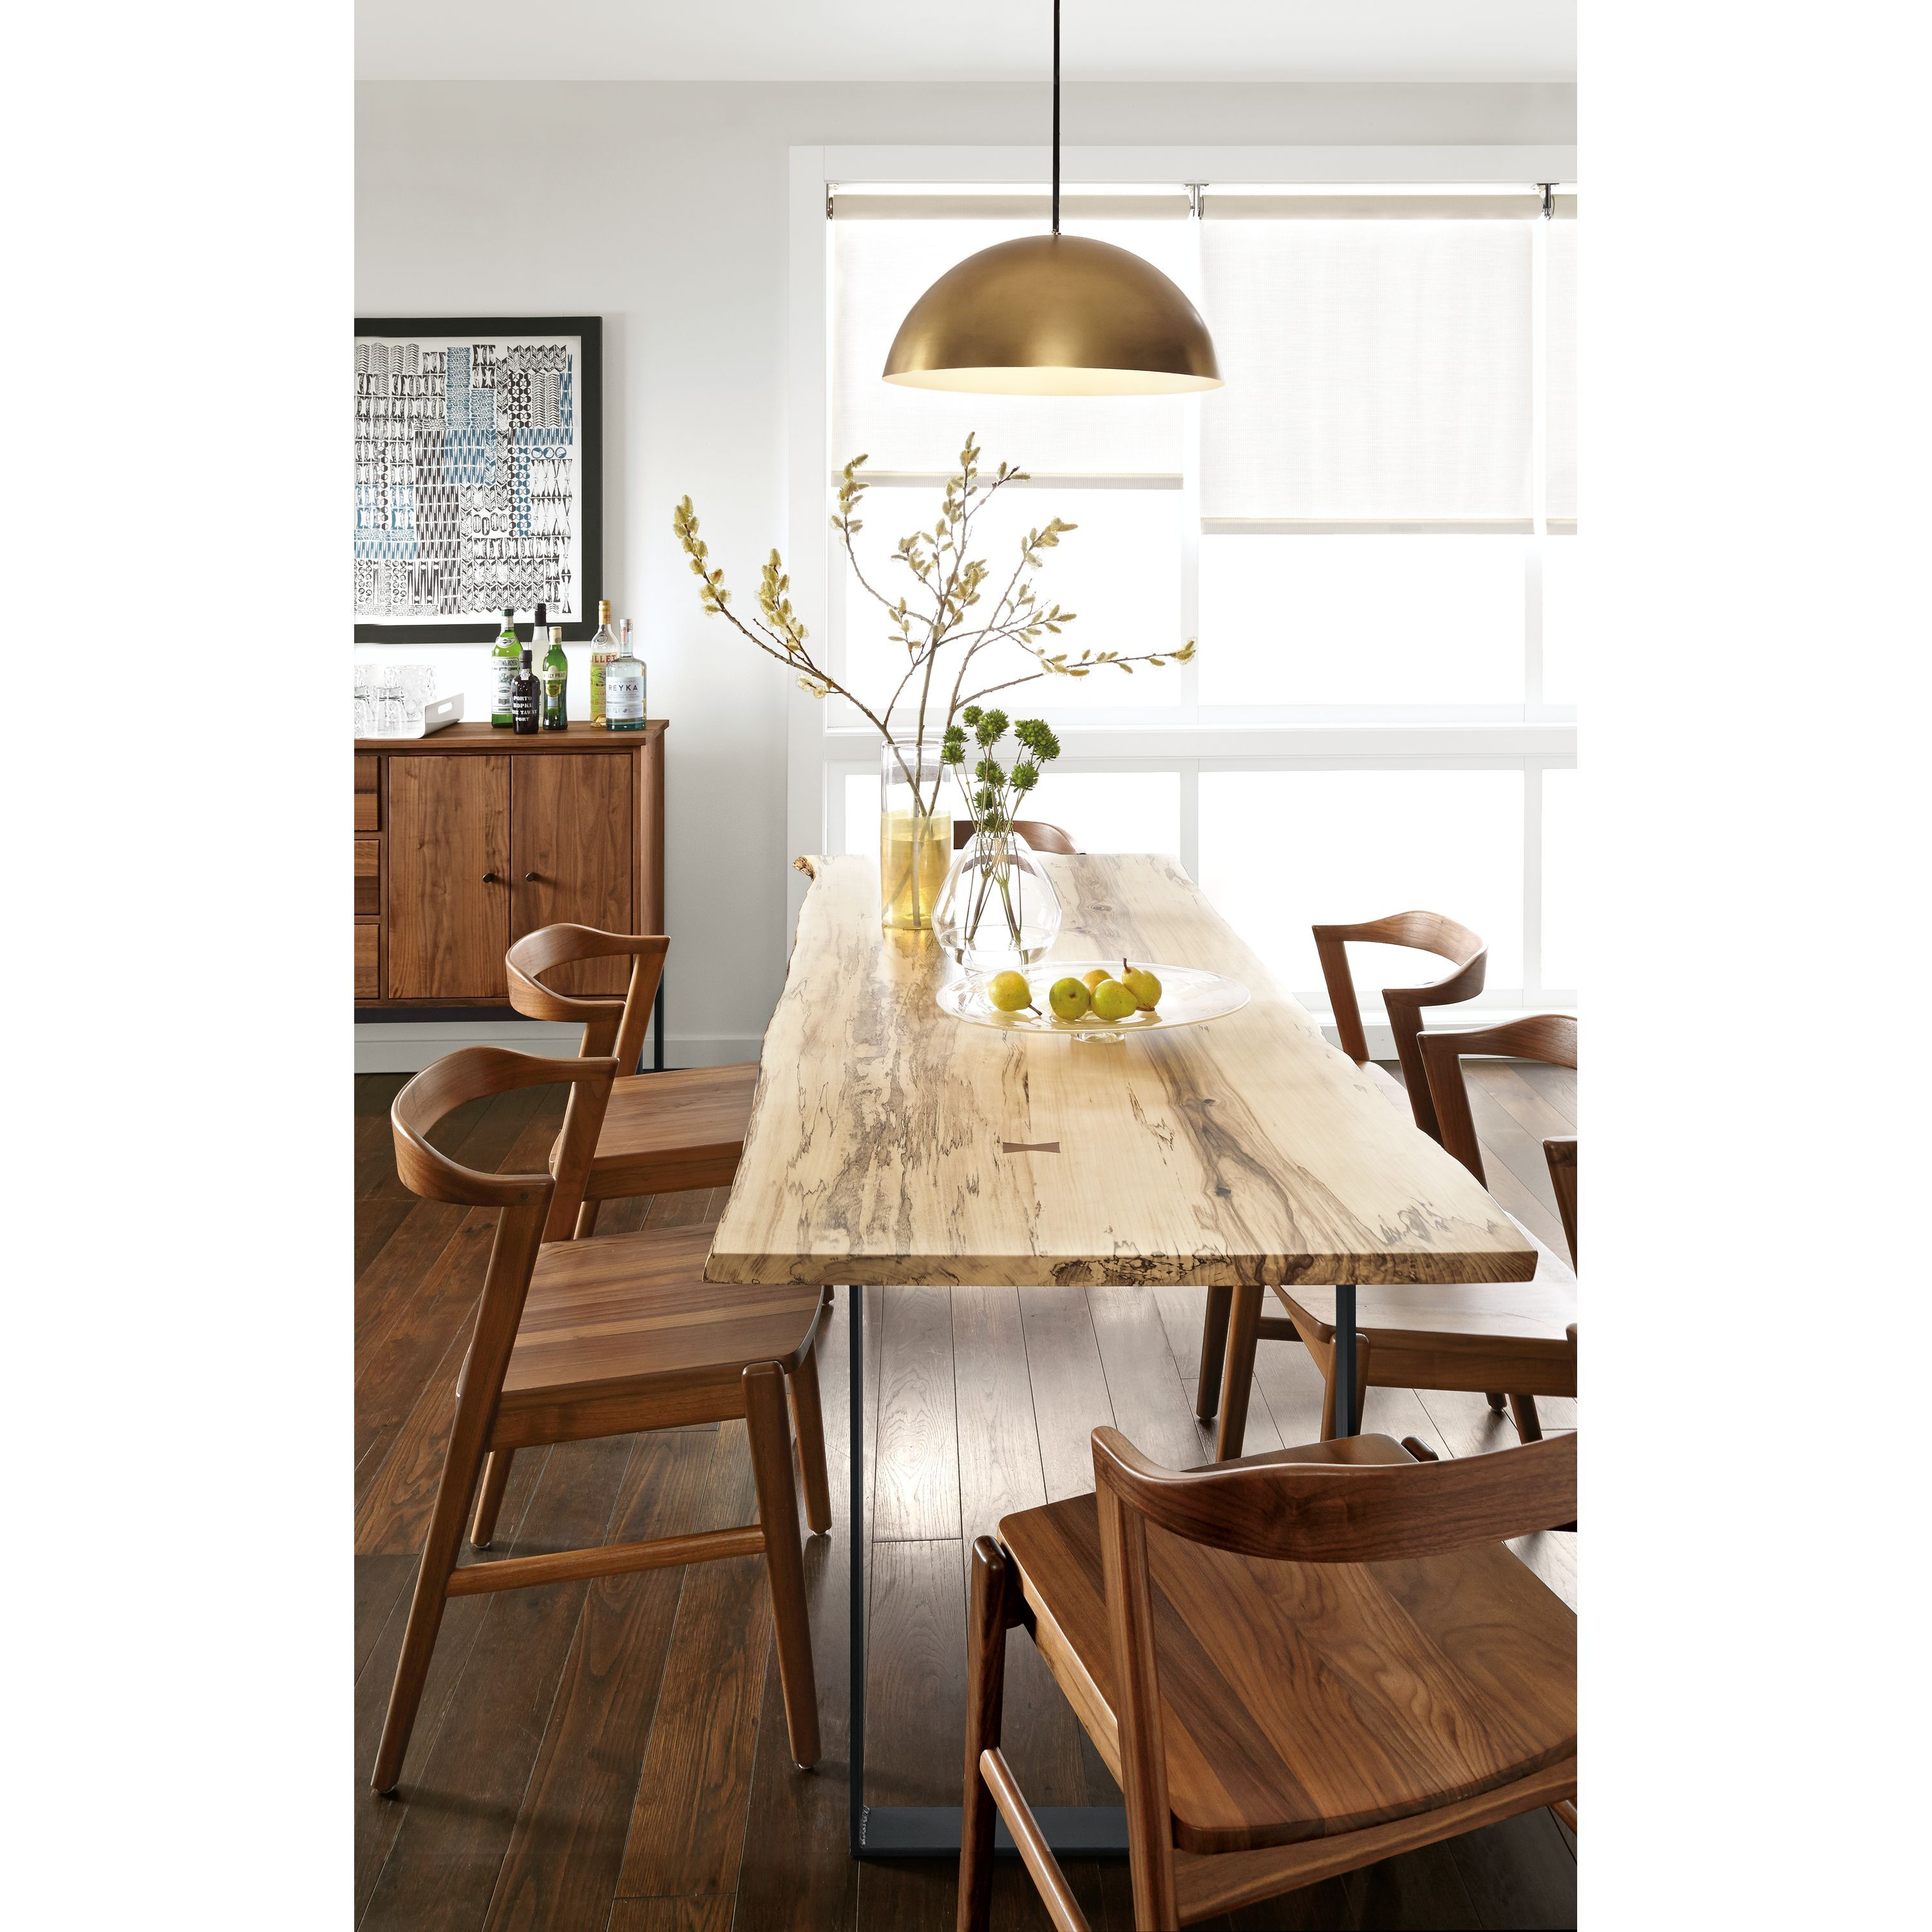 Linear Storage Cabinets Modern Armoires Dining Room Kitchen Furniture Board Wood Chairs